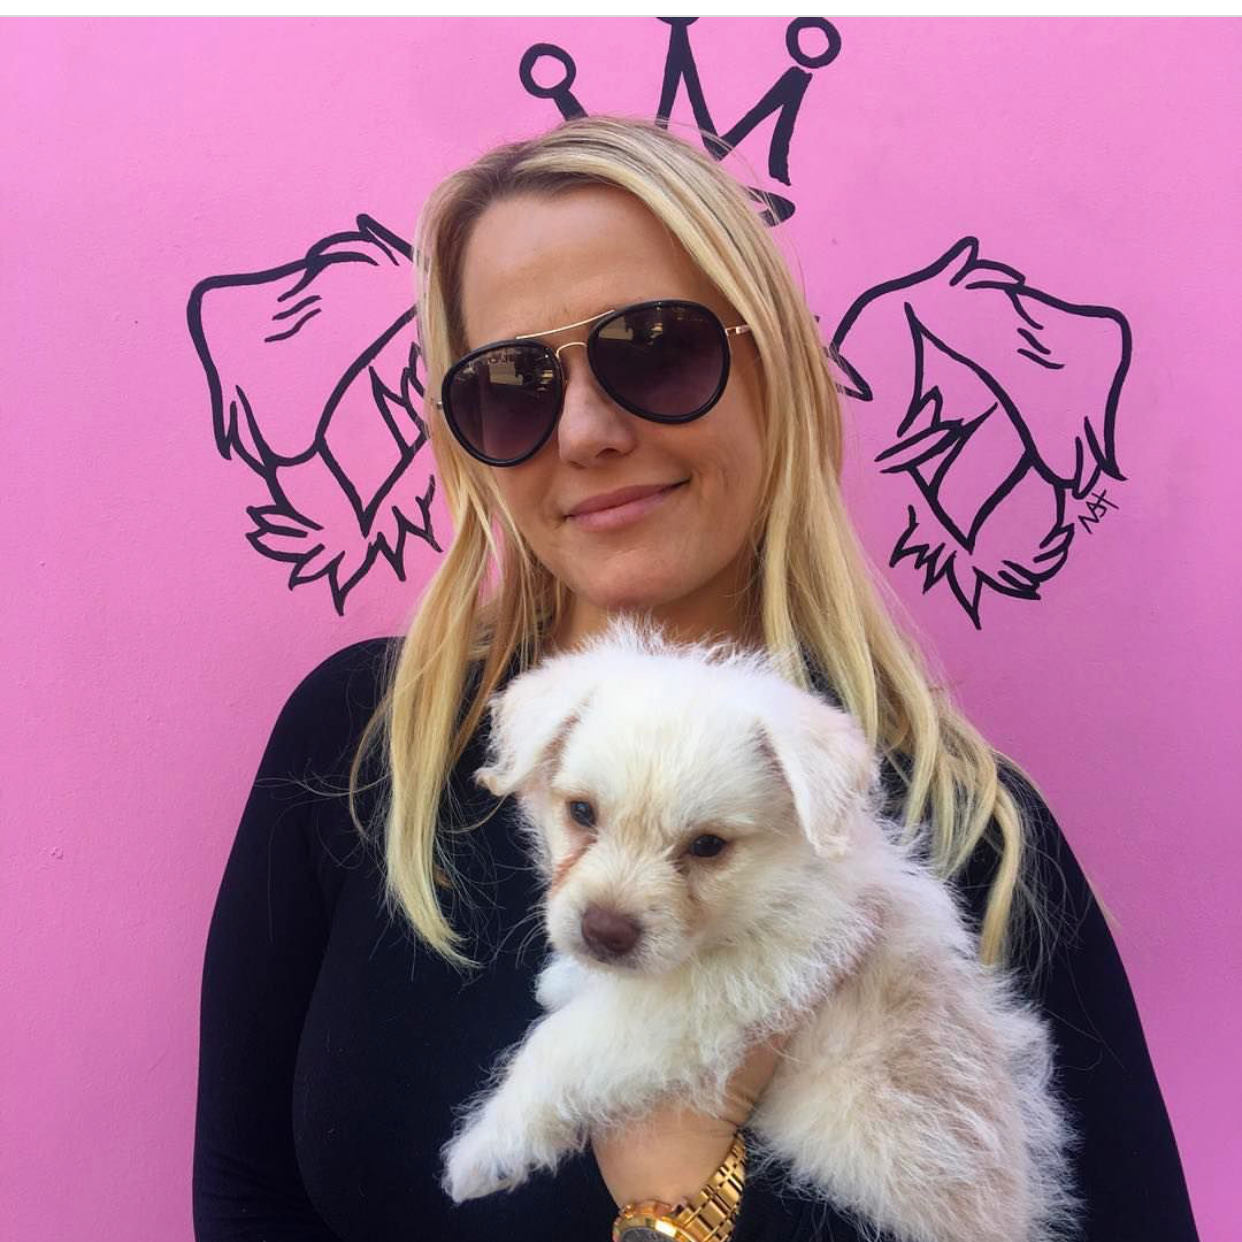 Presley Vanderpump is enjoying his new life at his forever home with his mother who owns a dance studio!! Come visit us again soon and show us your dance moves, little guy!